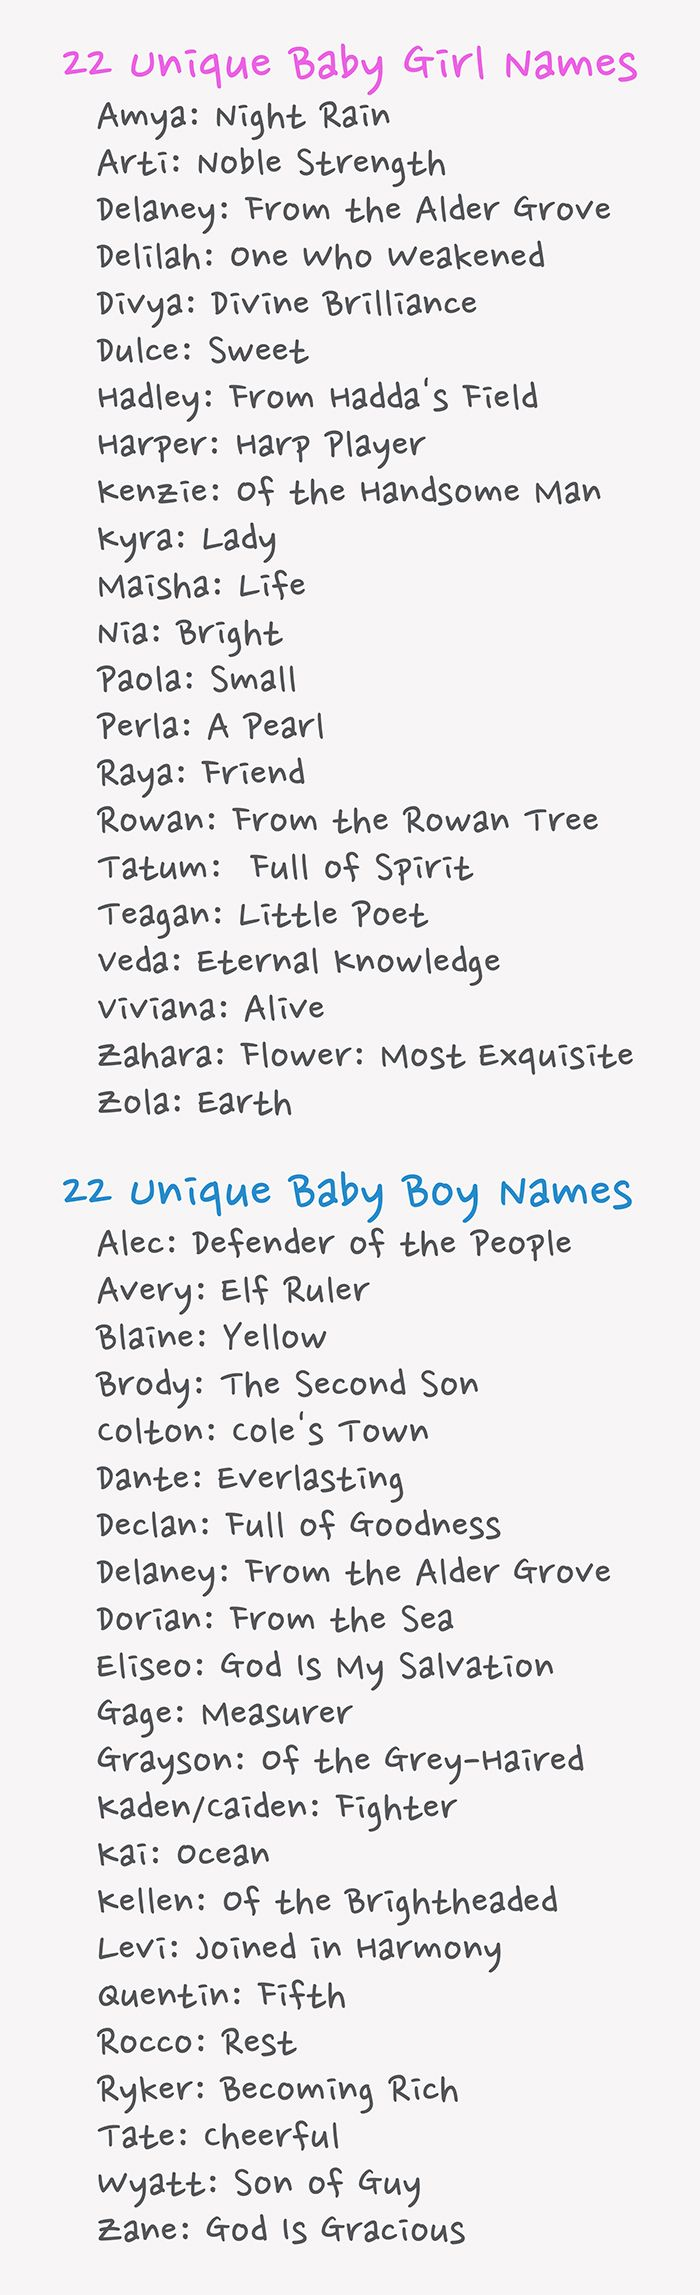 Unique Baby Names; my sons name made the list. :)